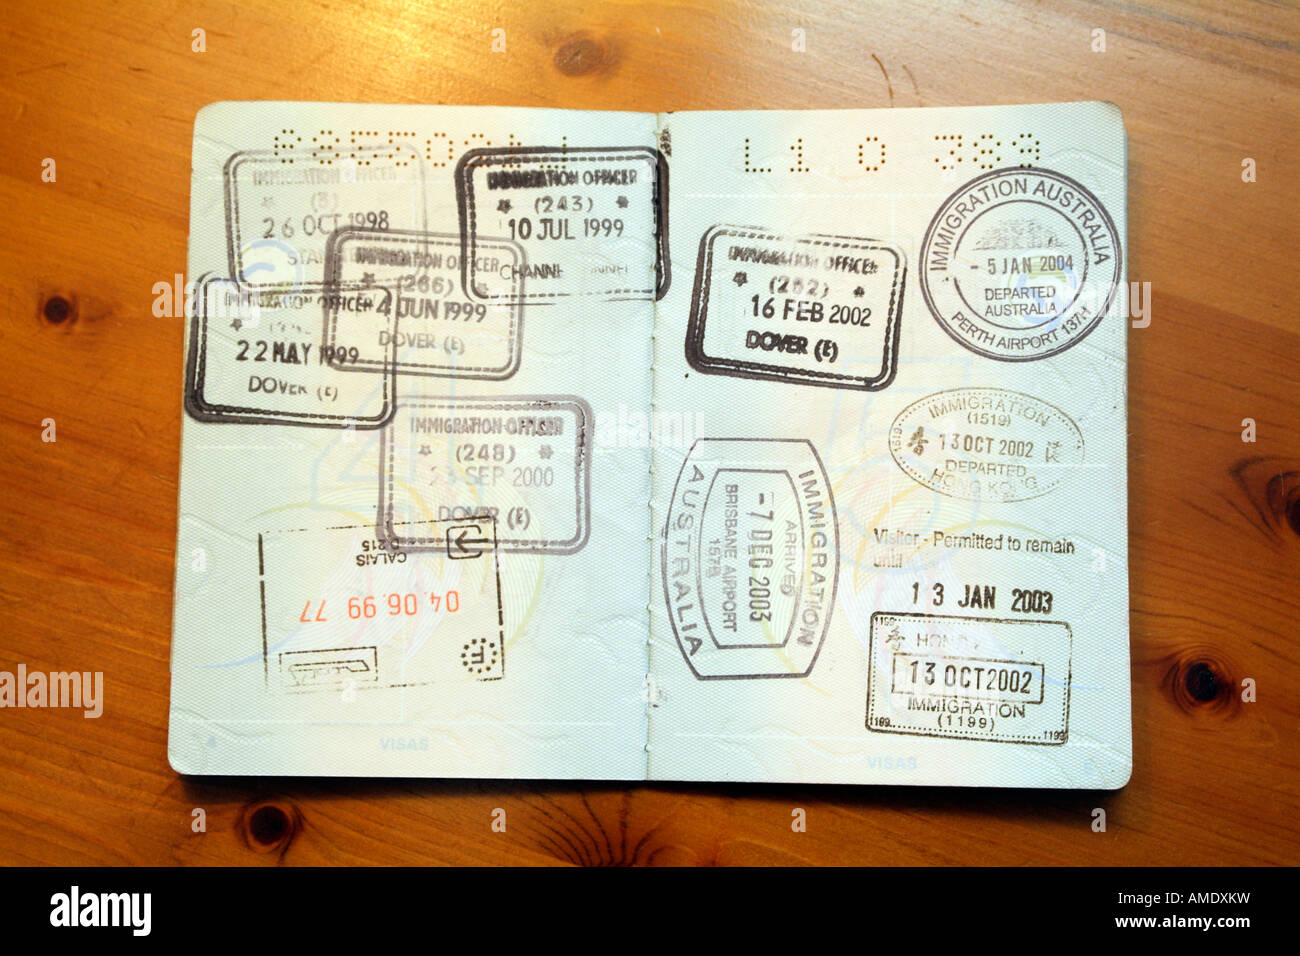 Australian Passport With Immigration Stamps